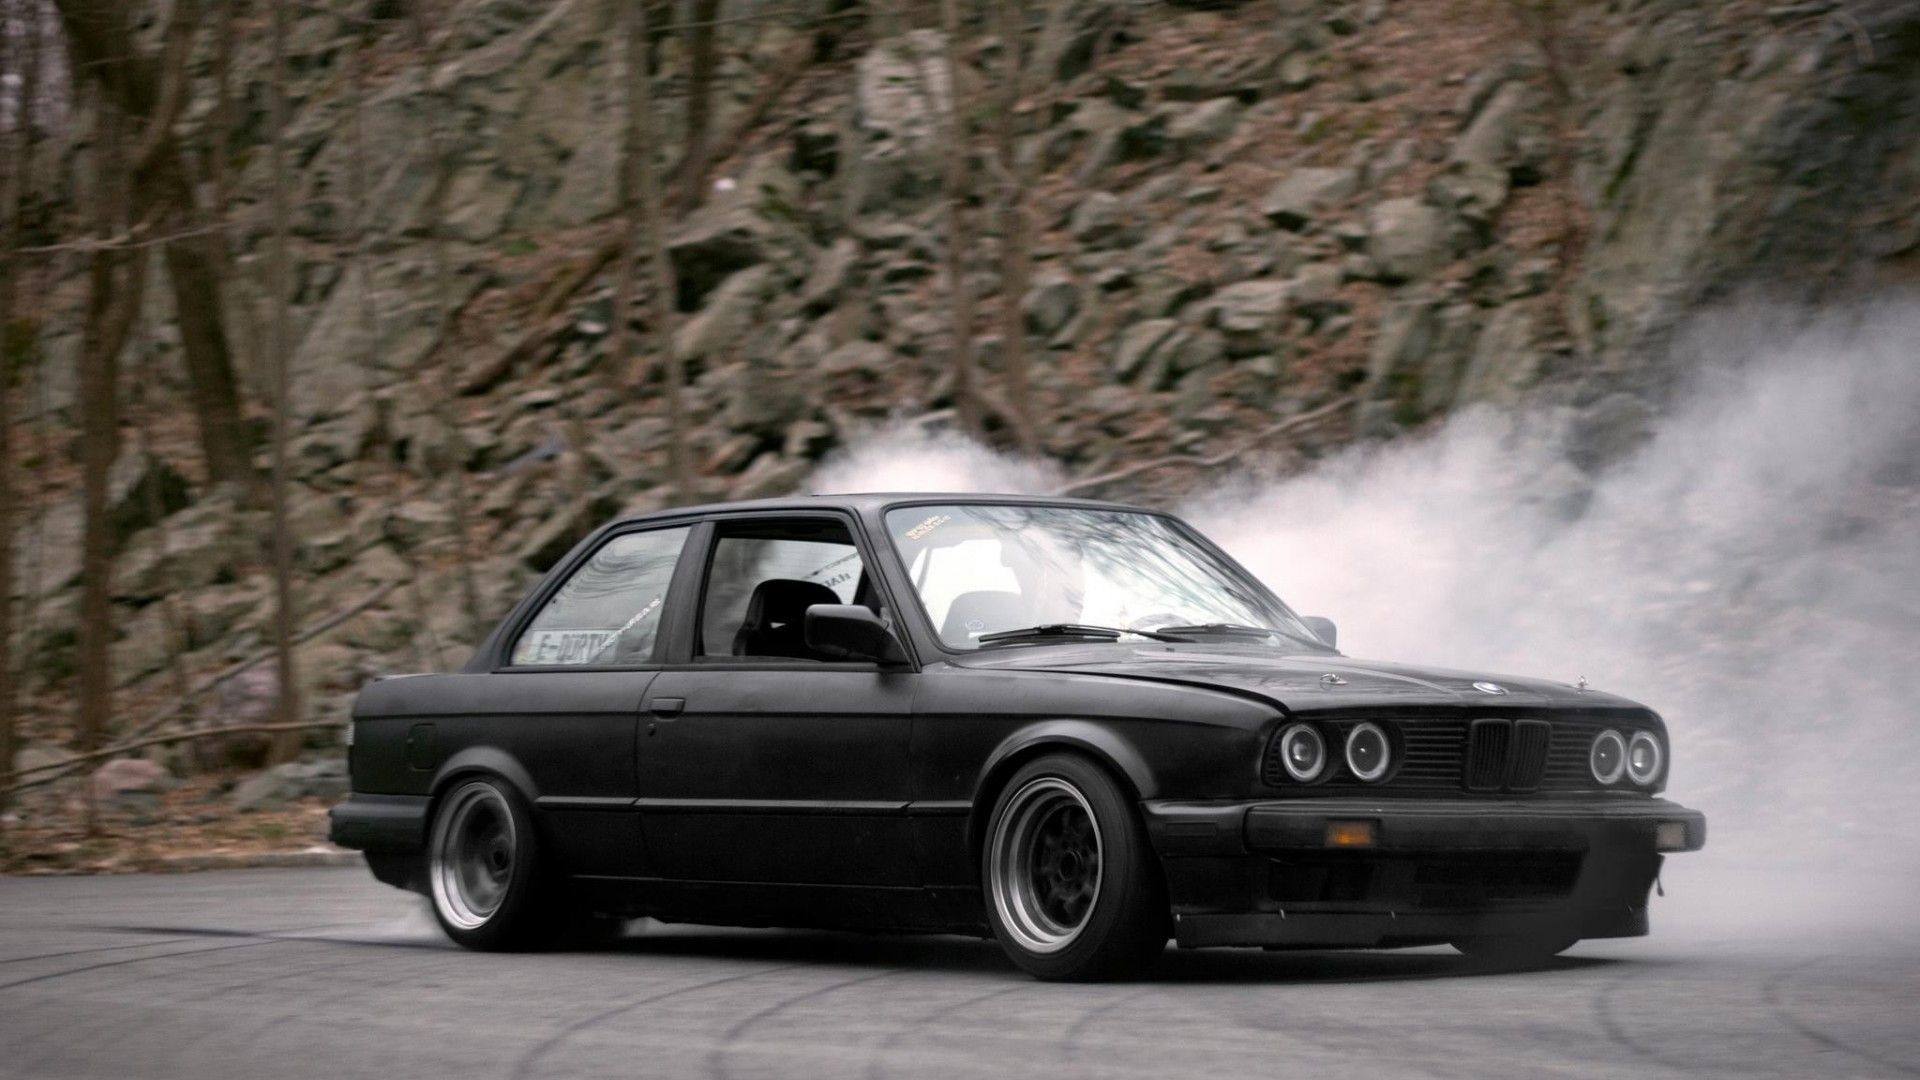 1920x1080 BMW E30 Wallpaper 12  768x432